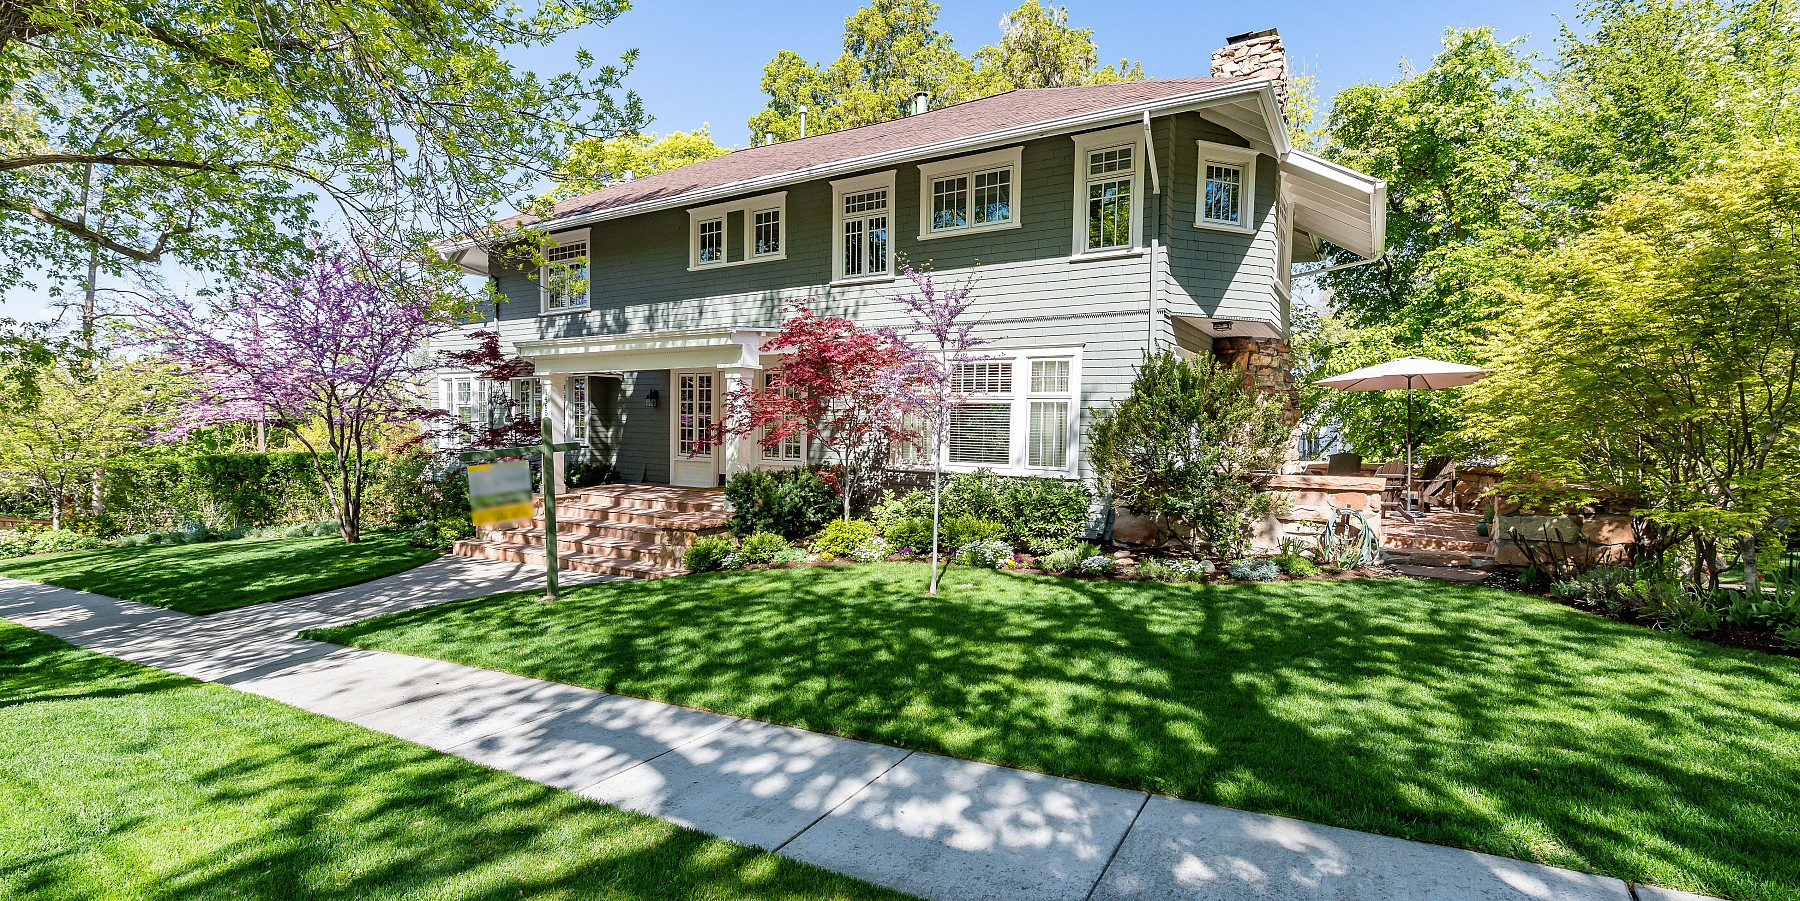 1465 E. Sigsbee Avenue, Salt Lake City, UT 84103